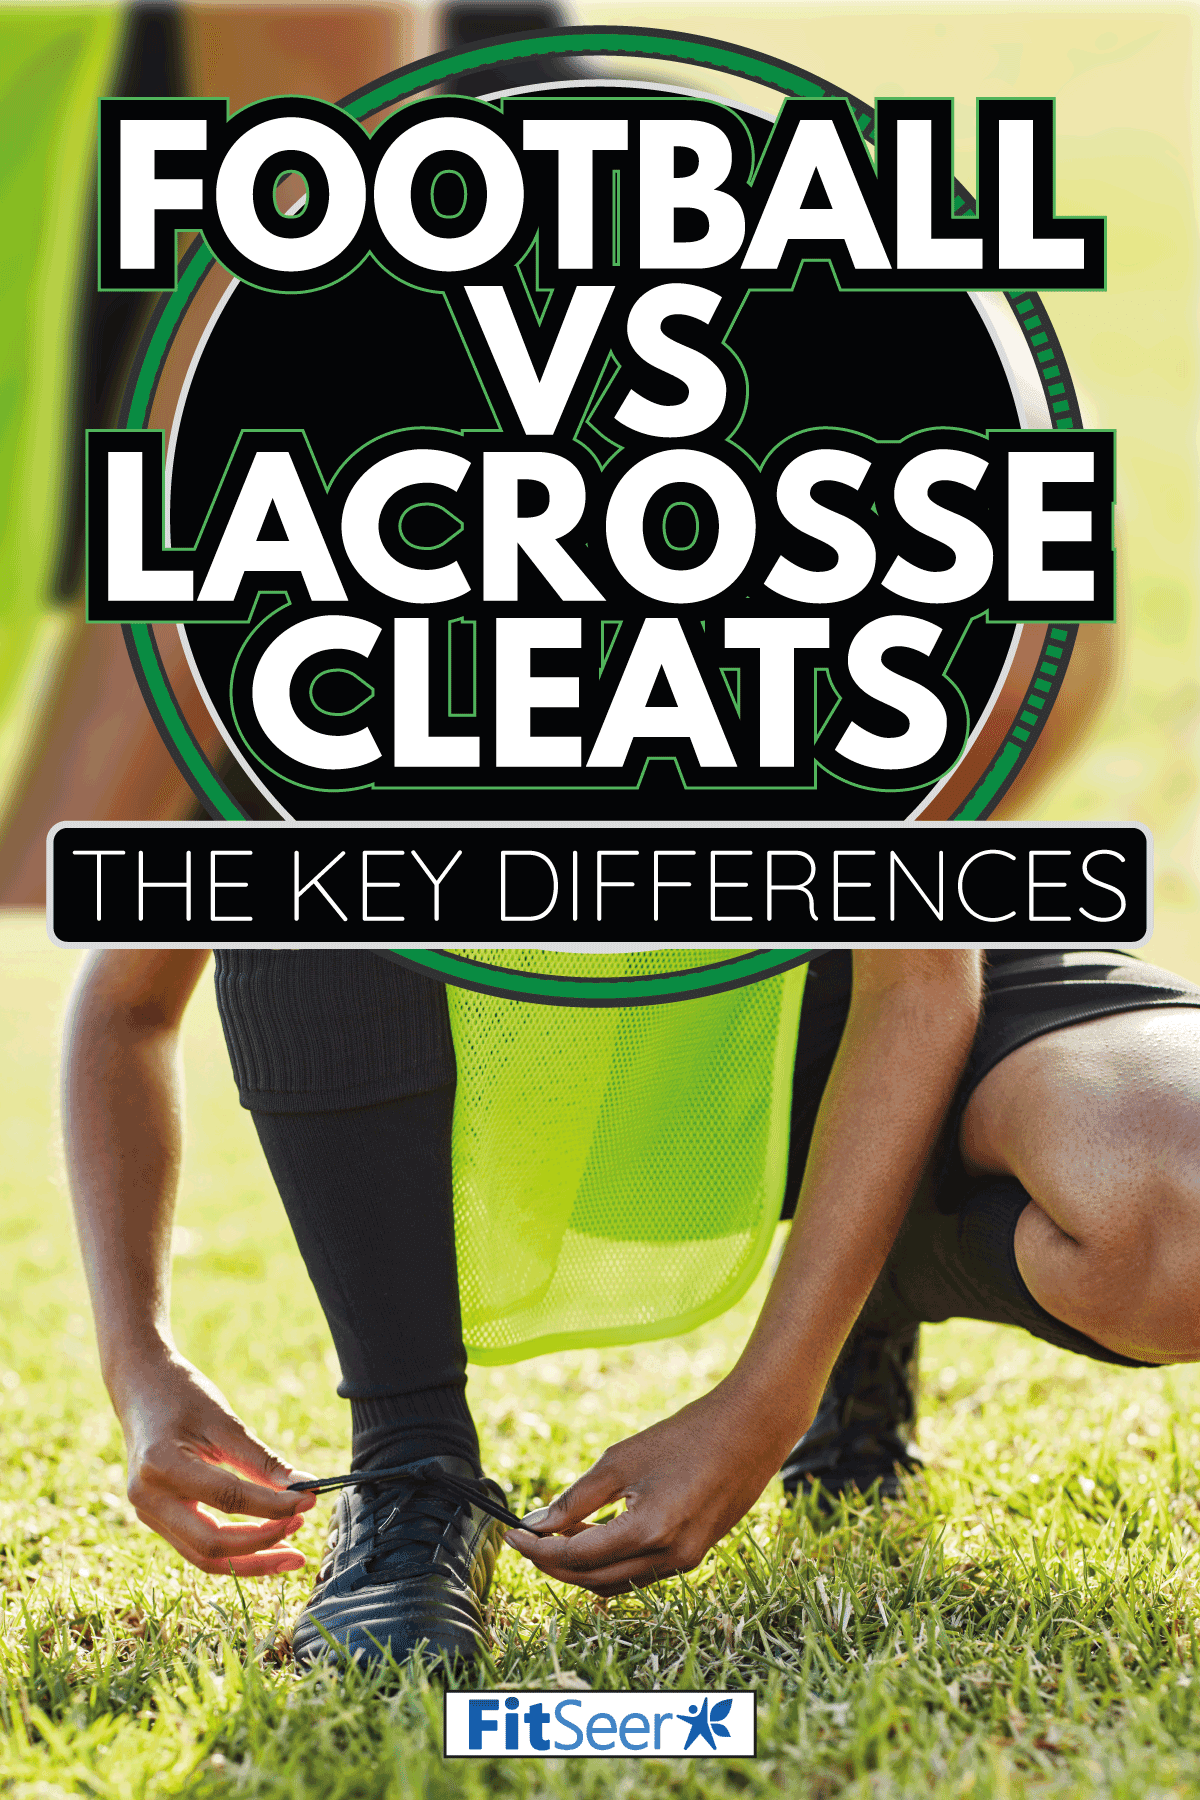 emale player lacing up her cleats, outdoors on the field. Football Vs Lacrosse Cleats—The Key Differences